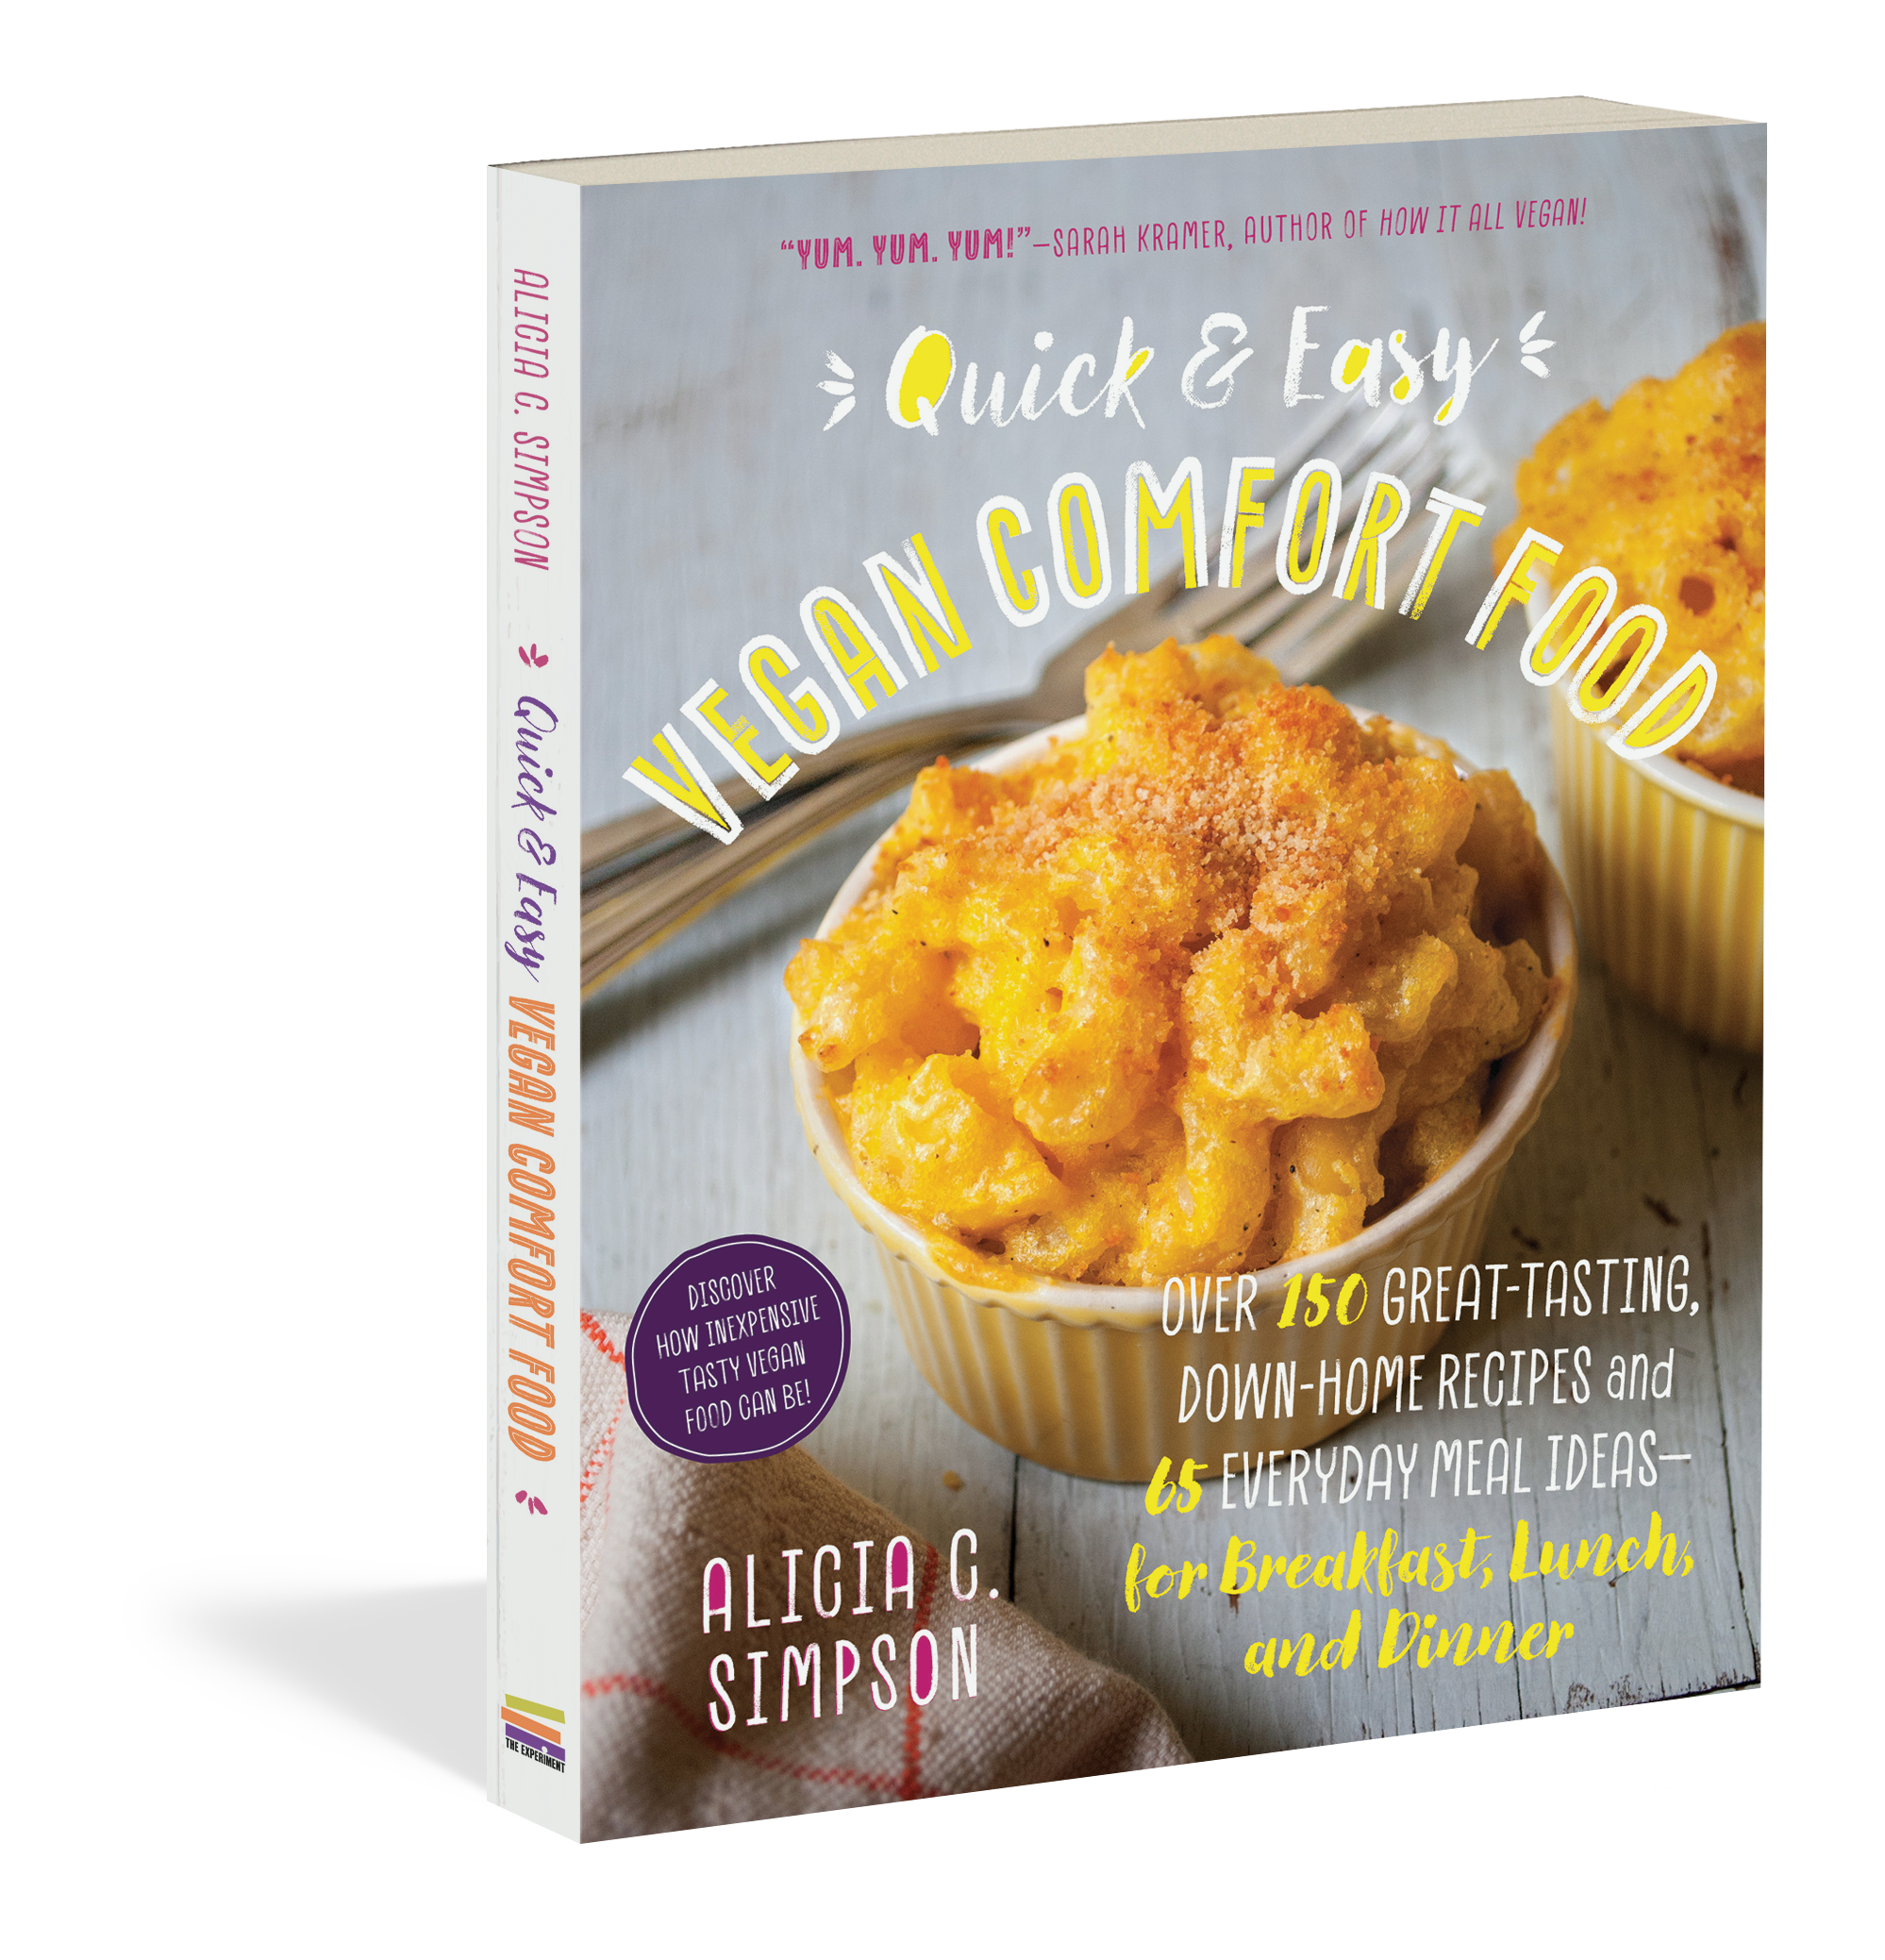 Quick and easy vegan comfort food workman publishing quick and easy vegan comfort food forumfinder Gallery